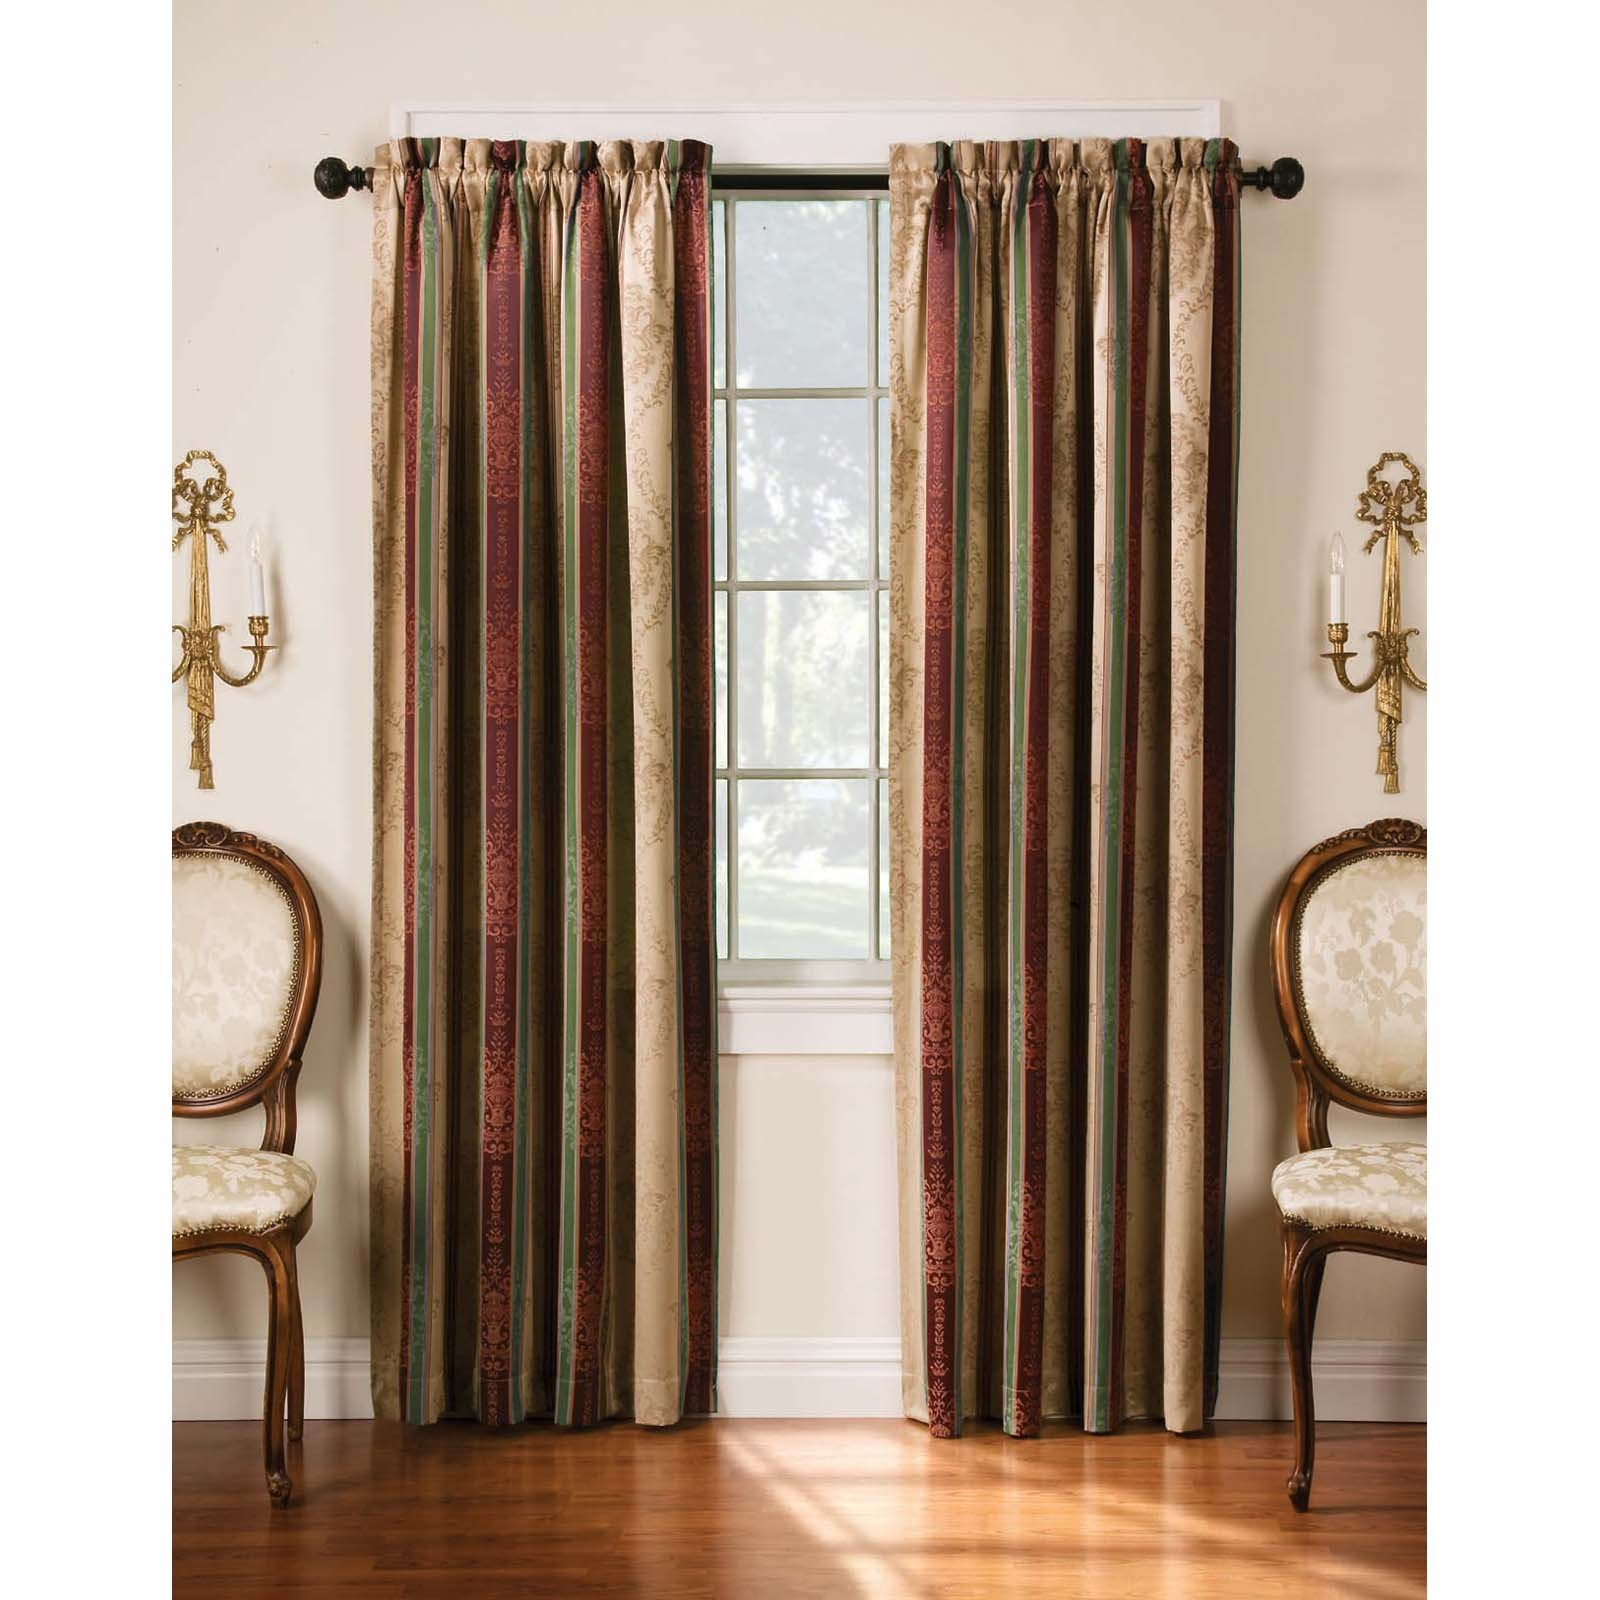 Earth Tone Curtains 15 Collection Of Multi Coloured Striped Curtains Curtain